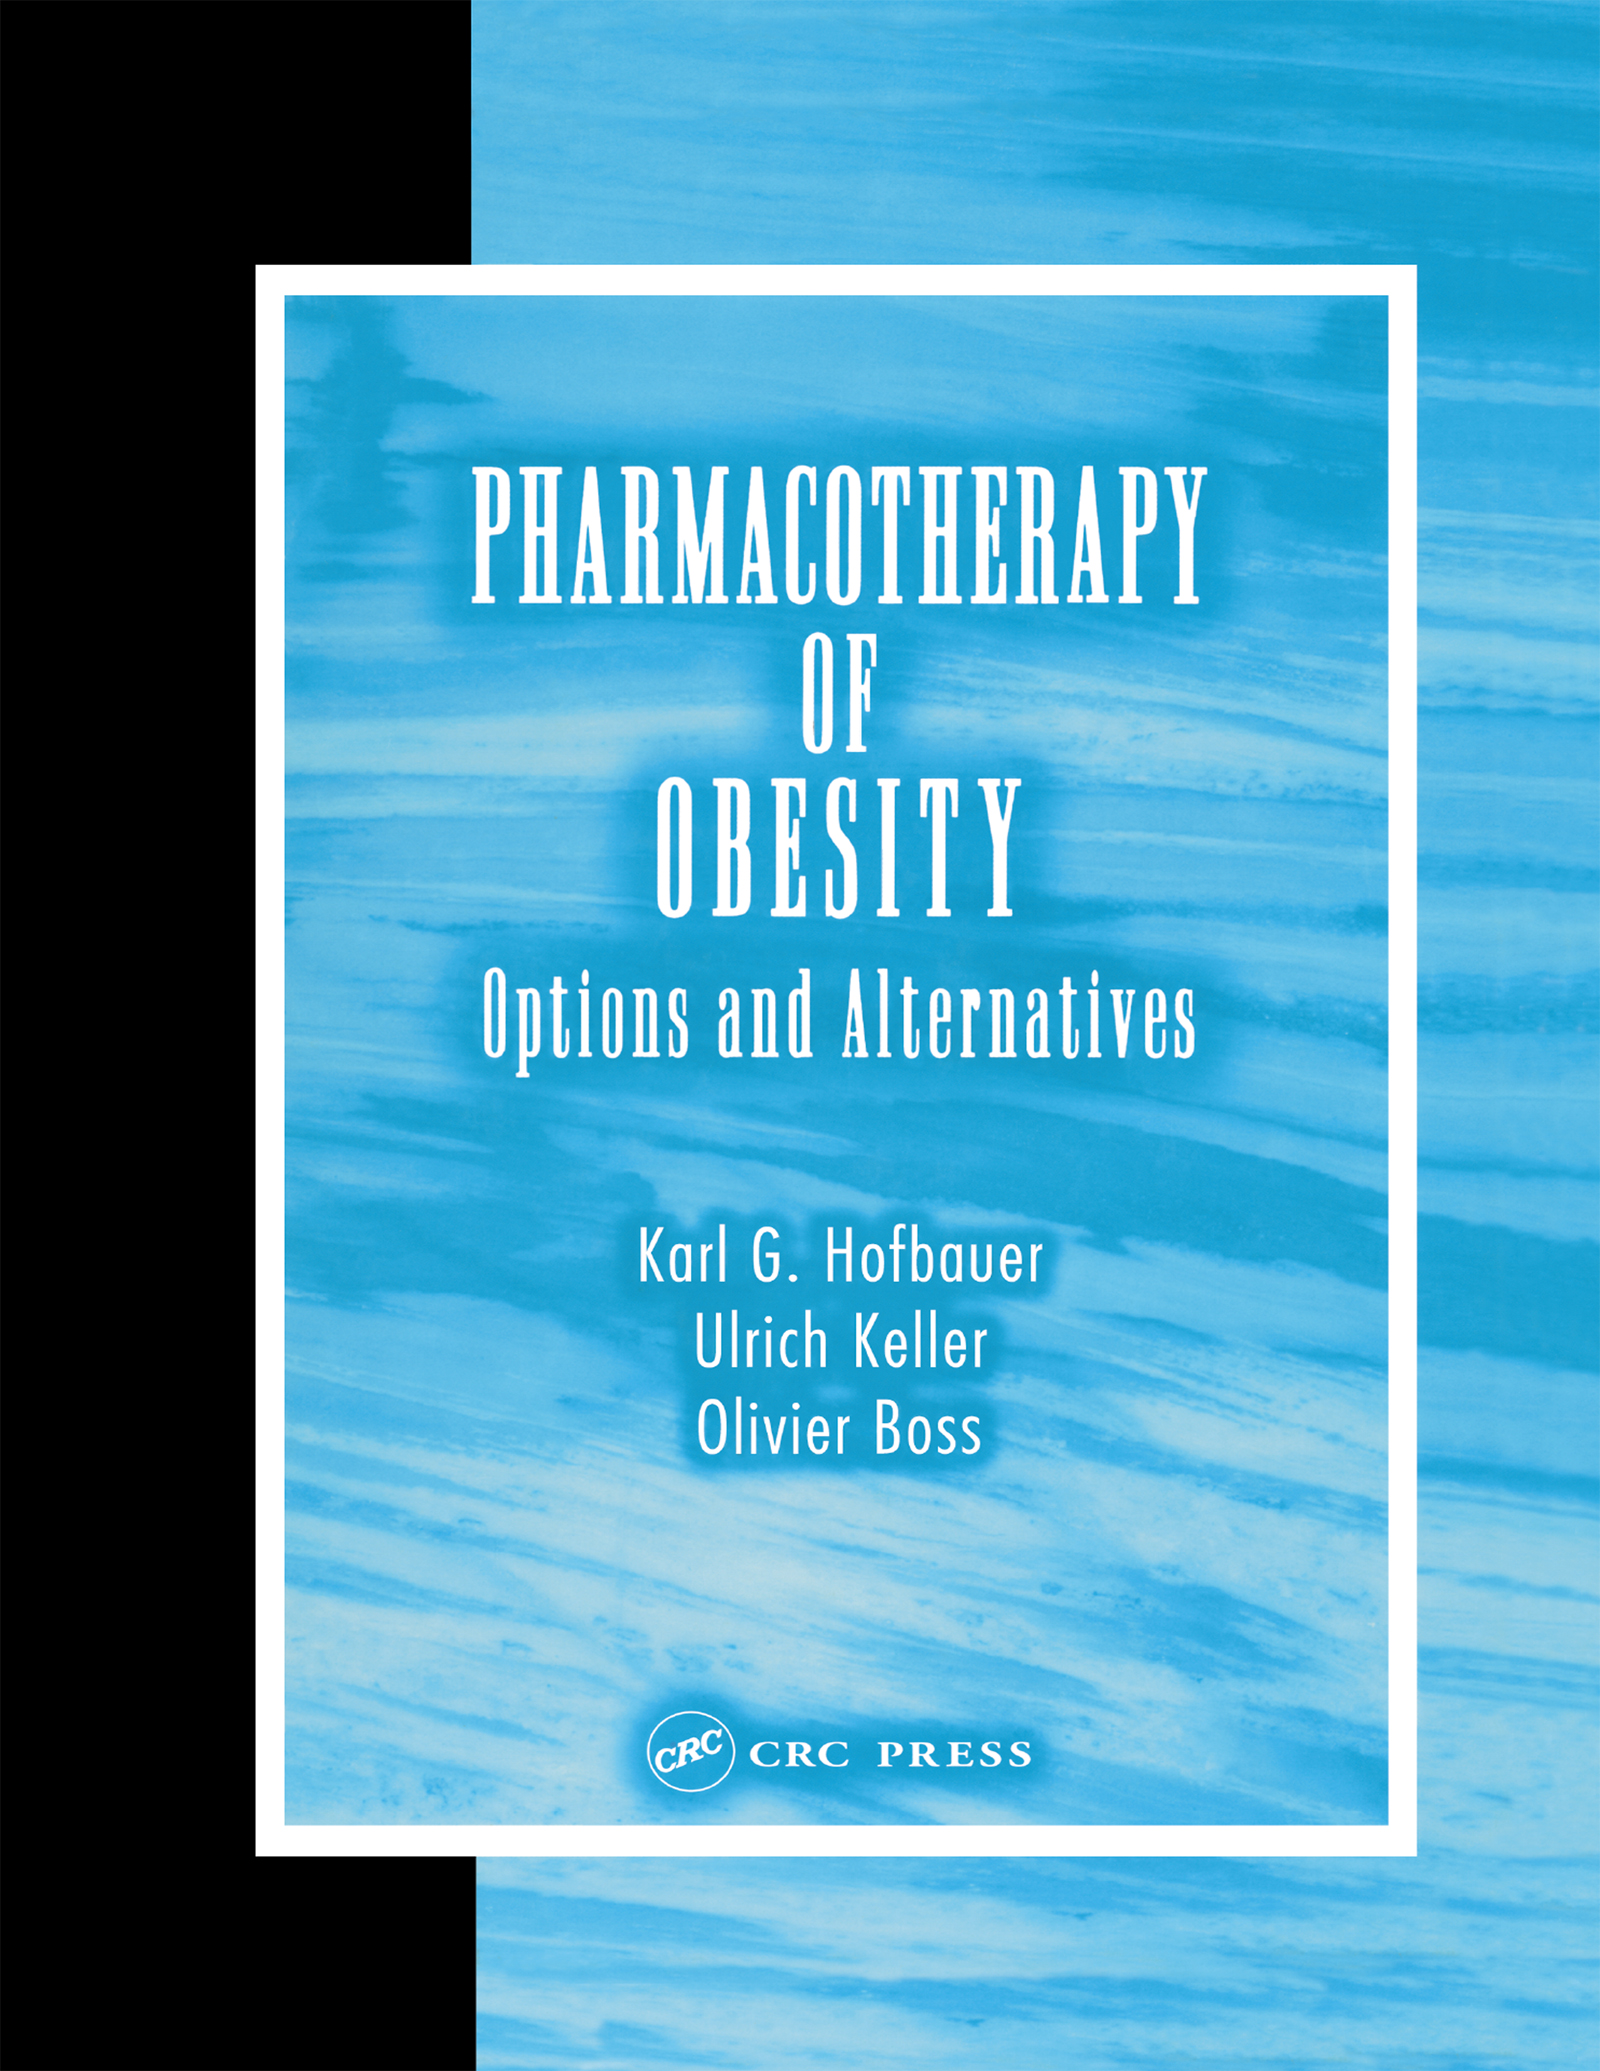 Pharmacotherapy of Obesity